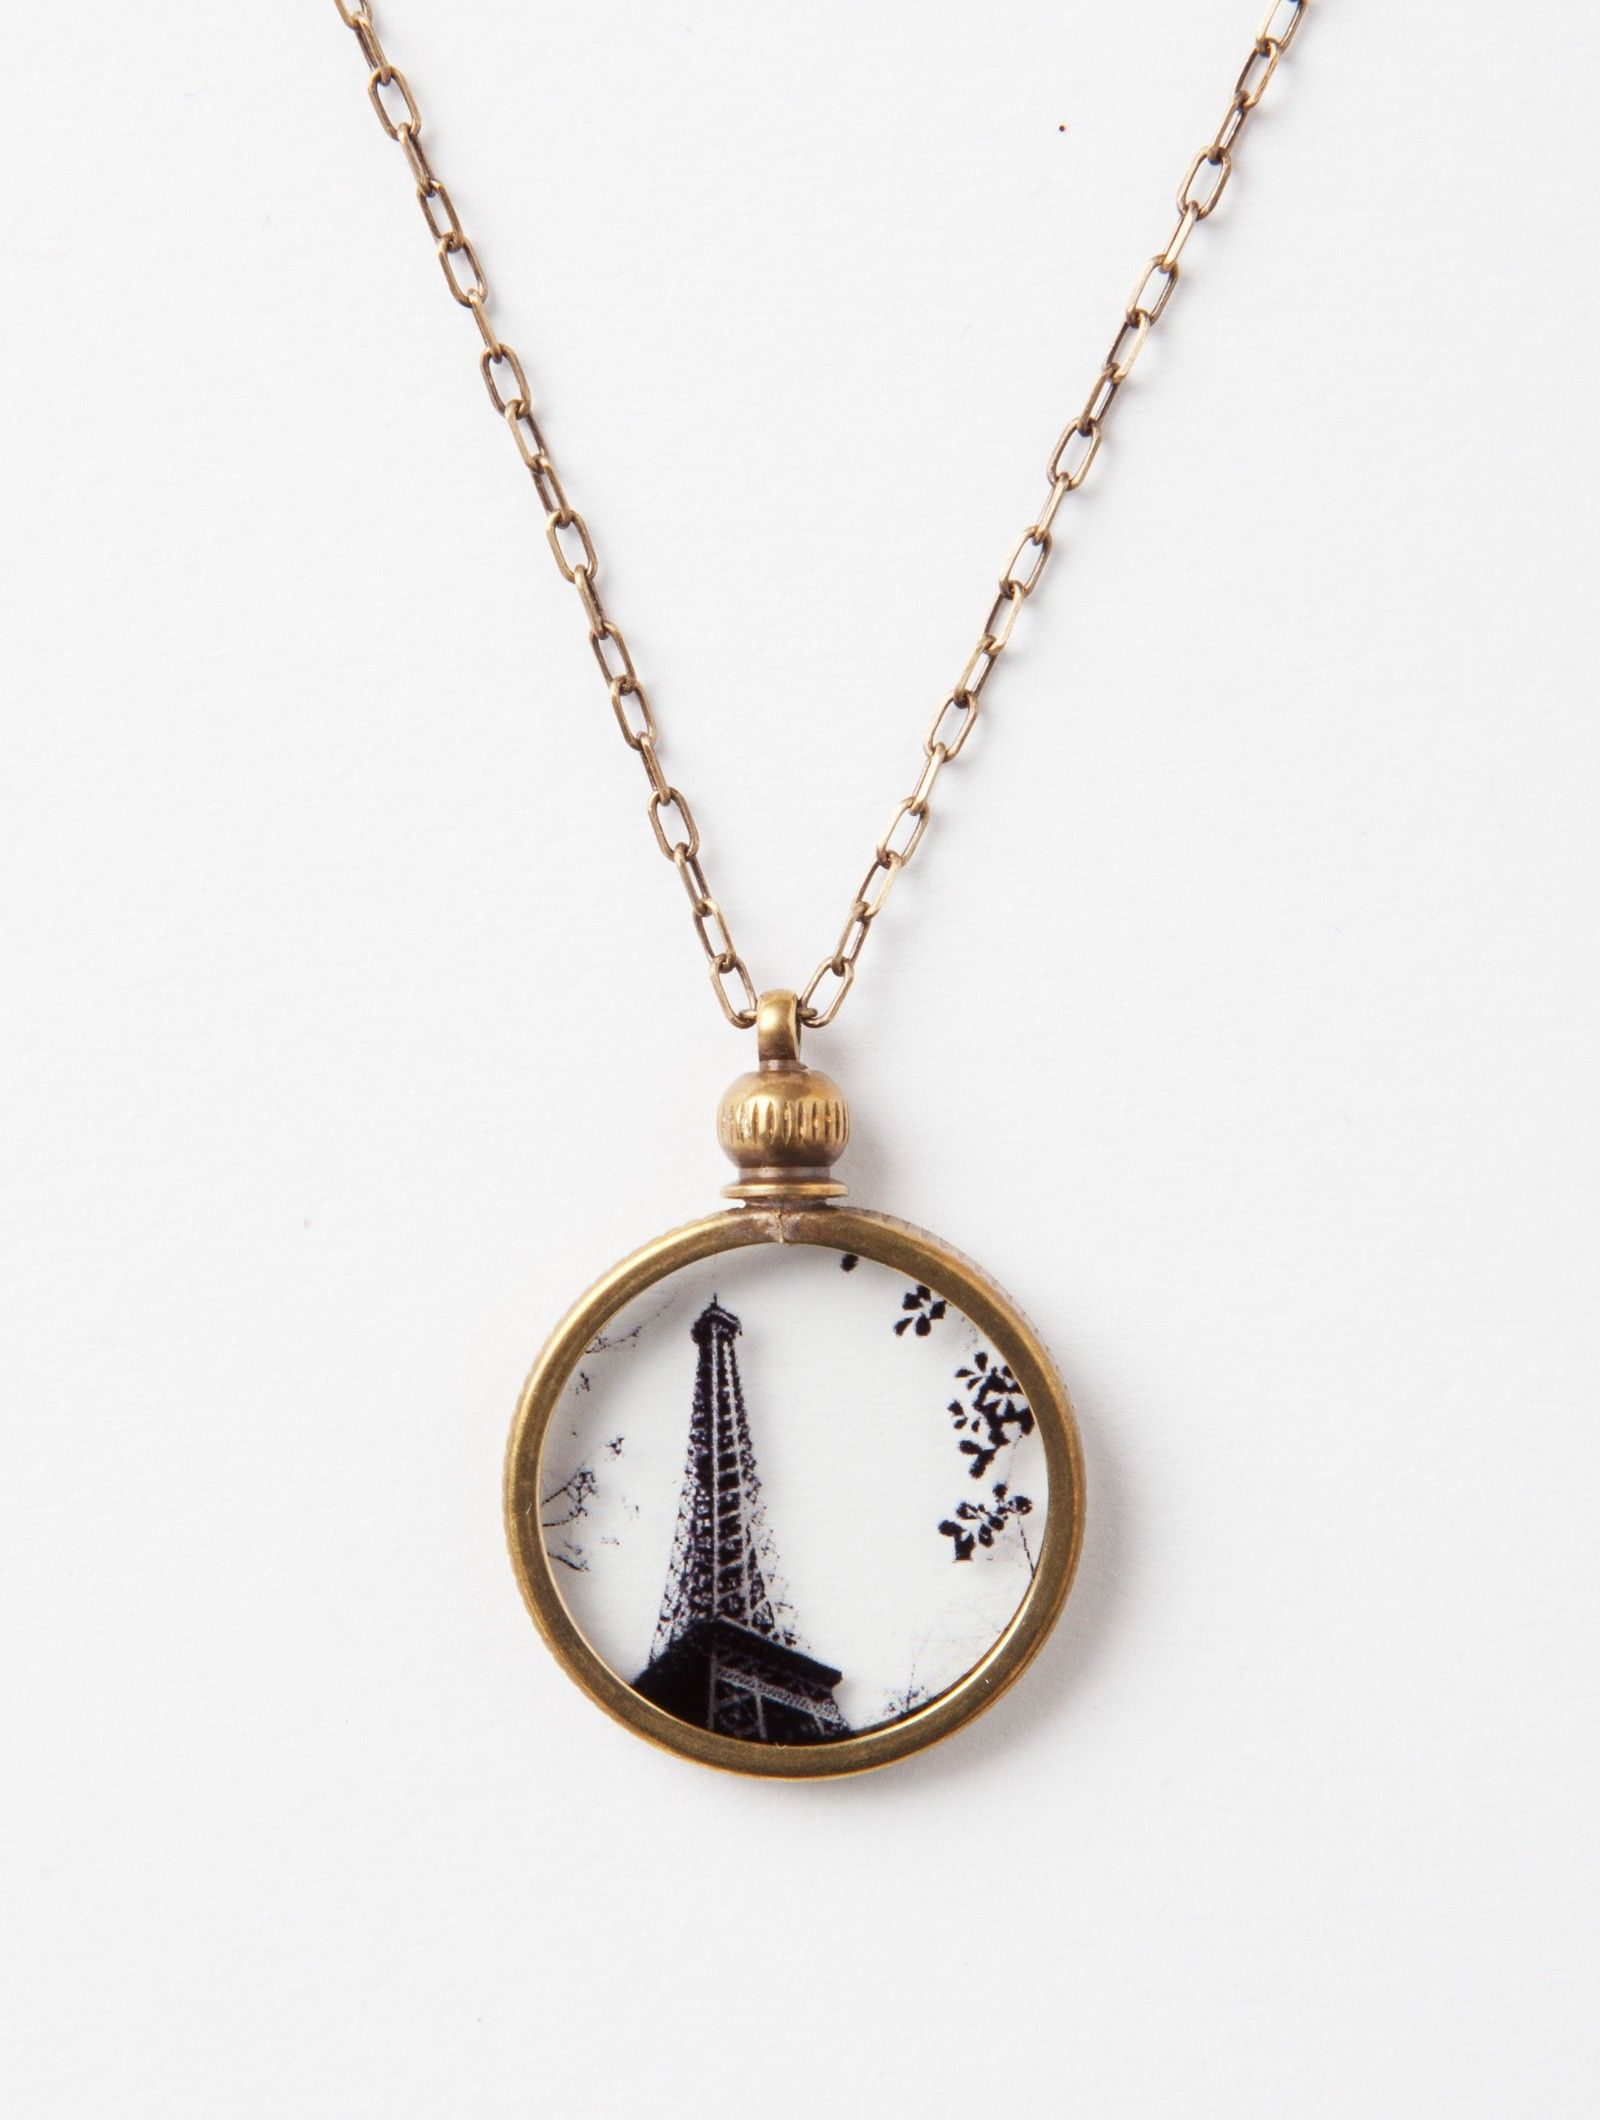 Eiffel tower pendant necklace by ornamental things